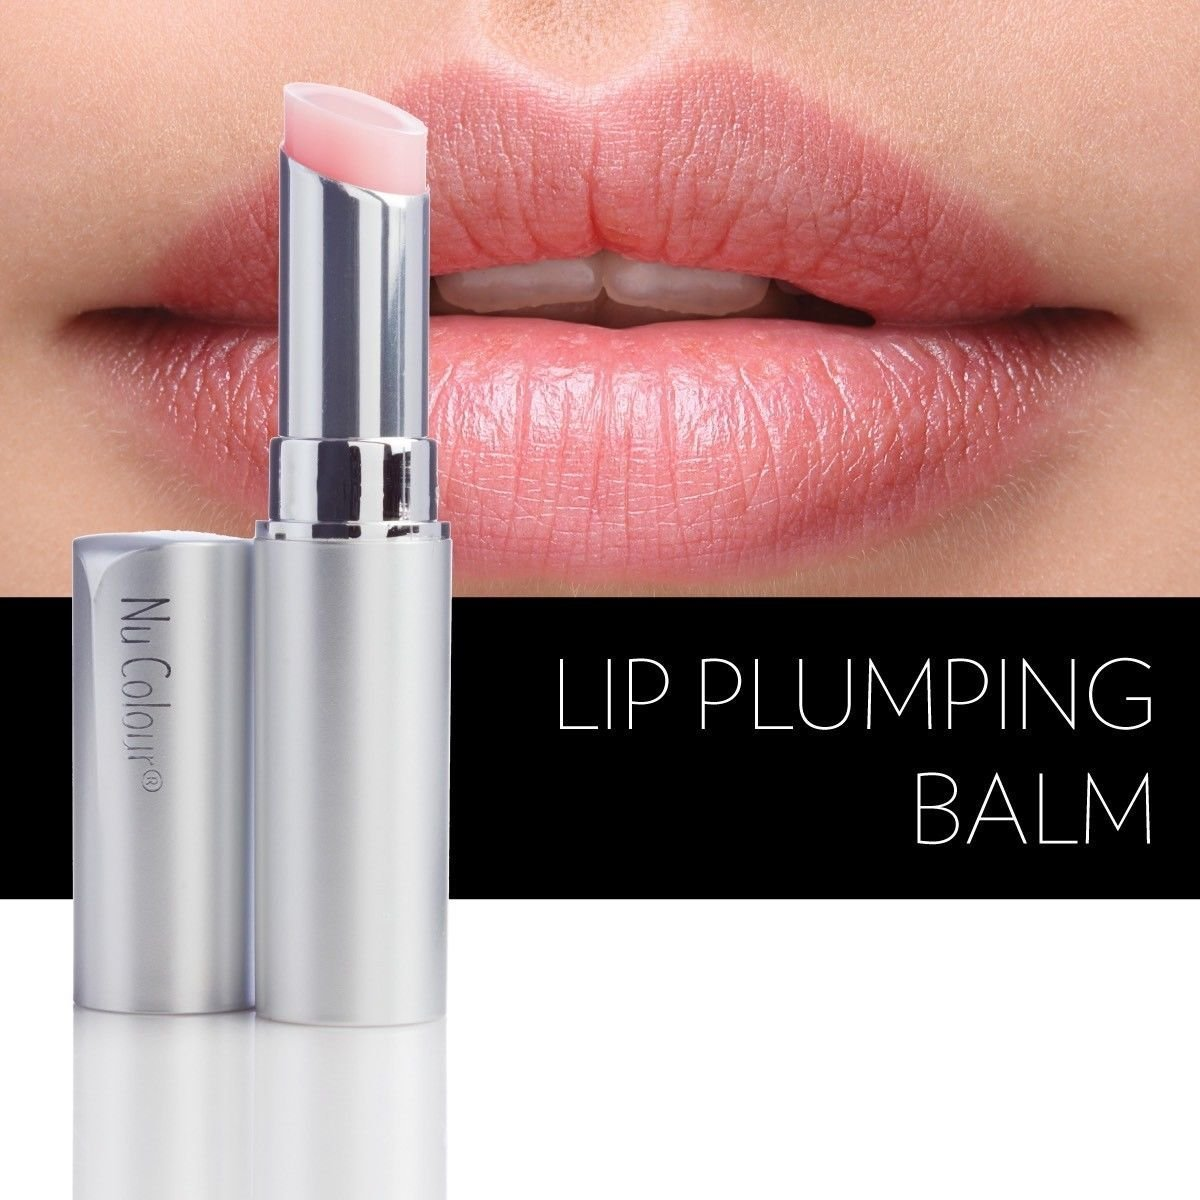 Image result for lip plumping balm